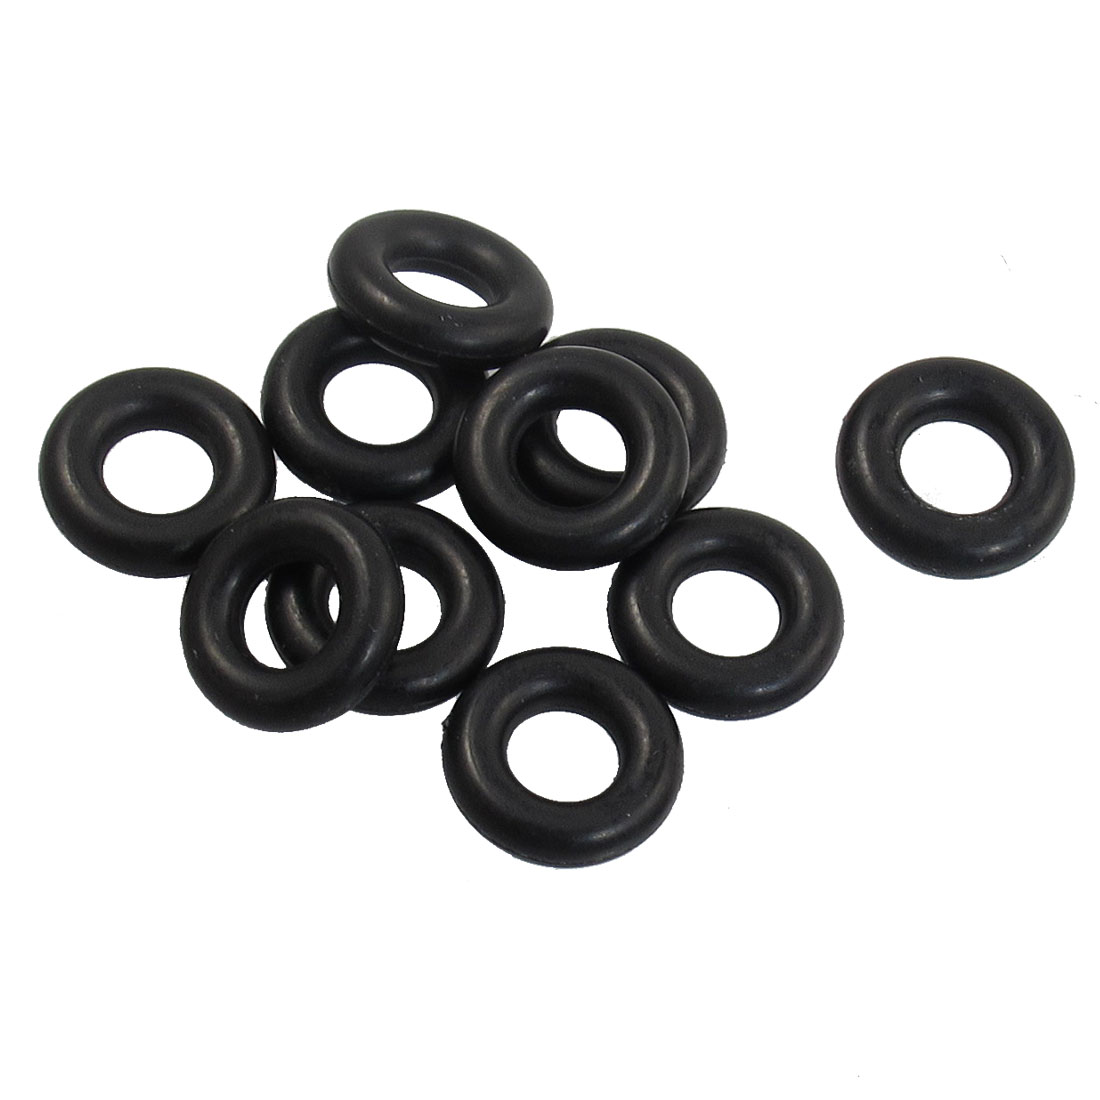 10 Pcs 5mm x 9mm x 2.4mm Rubber Sealing Oil Filter O Rings Gaskets